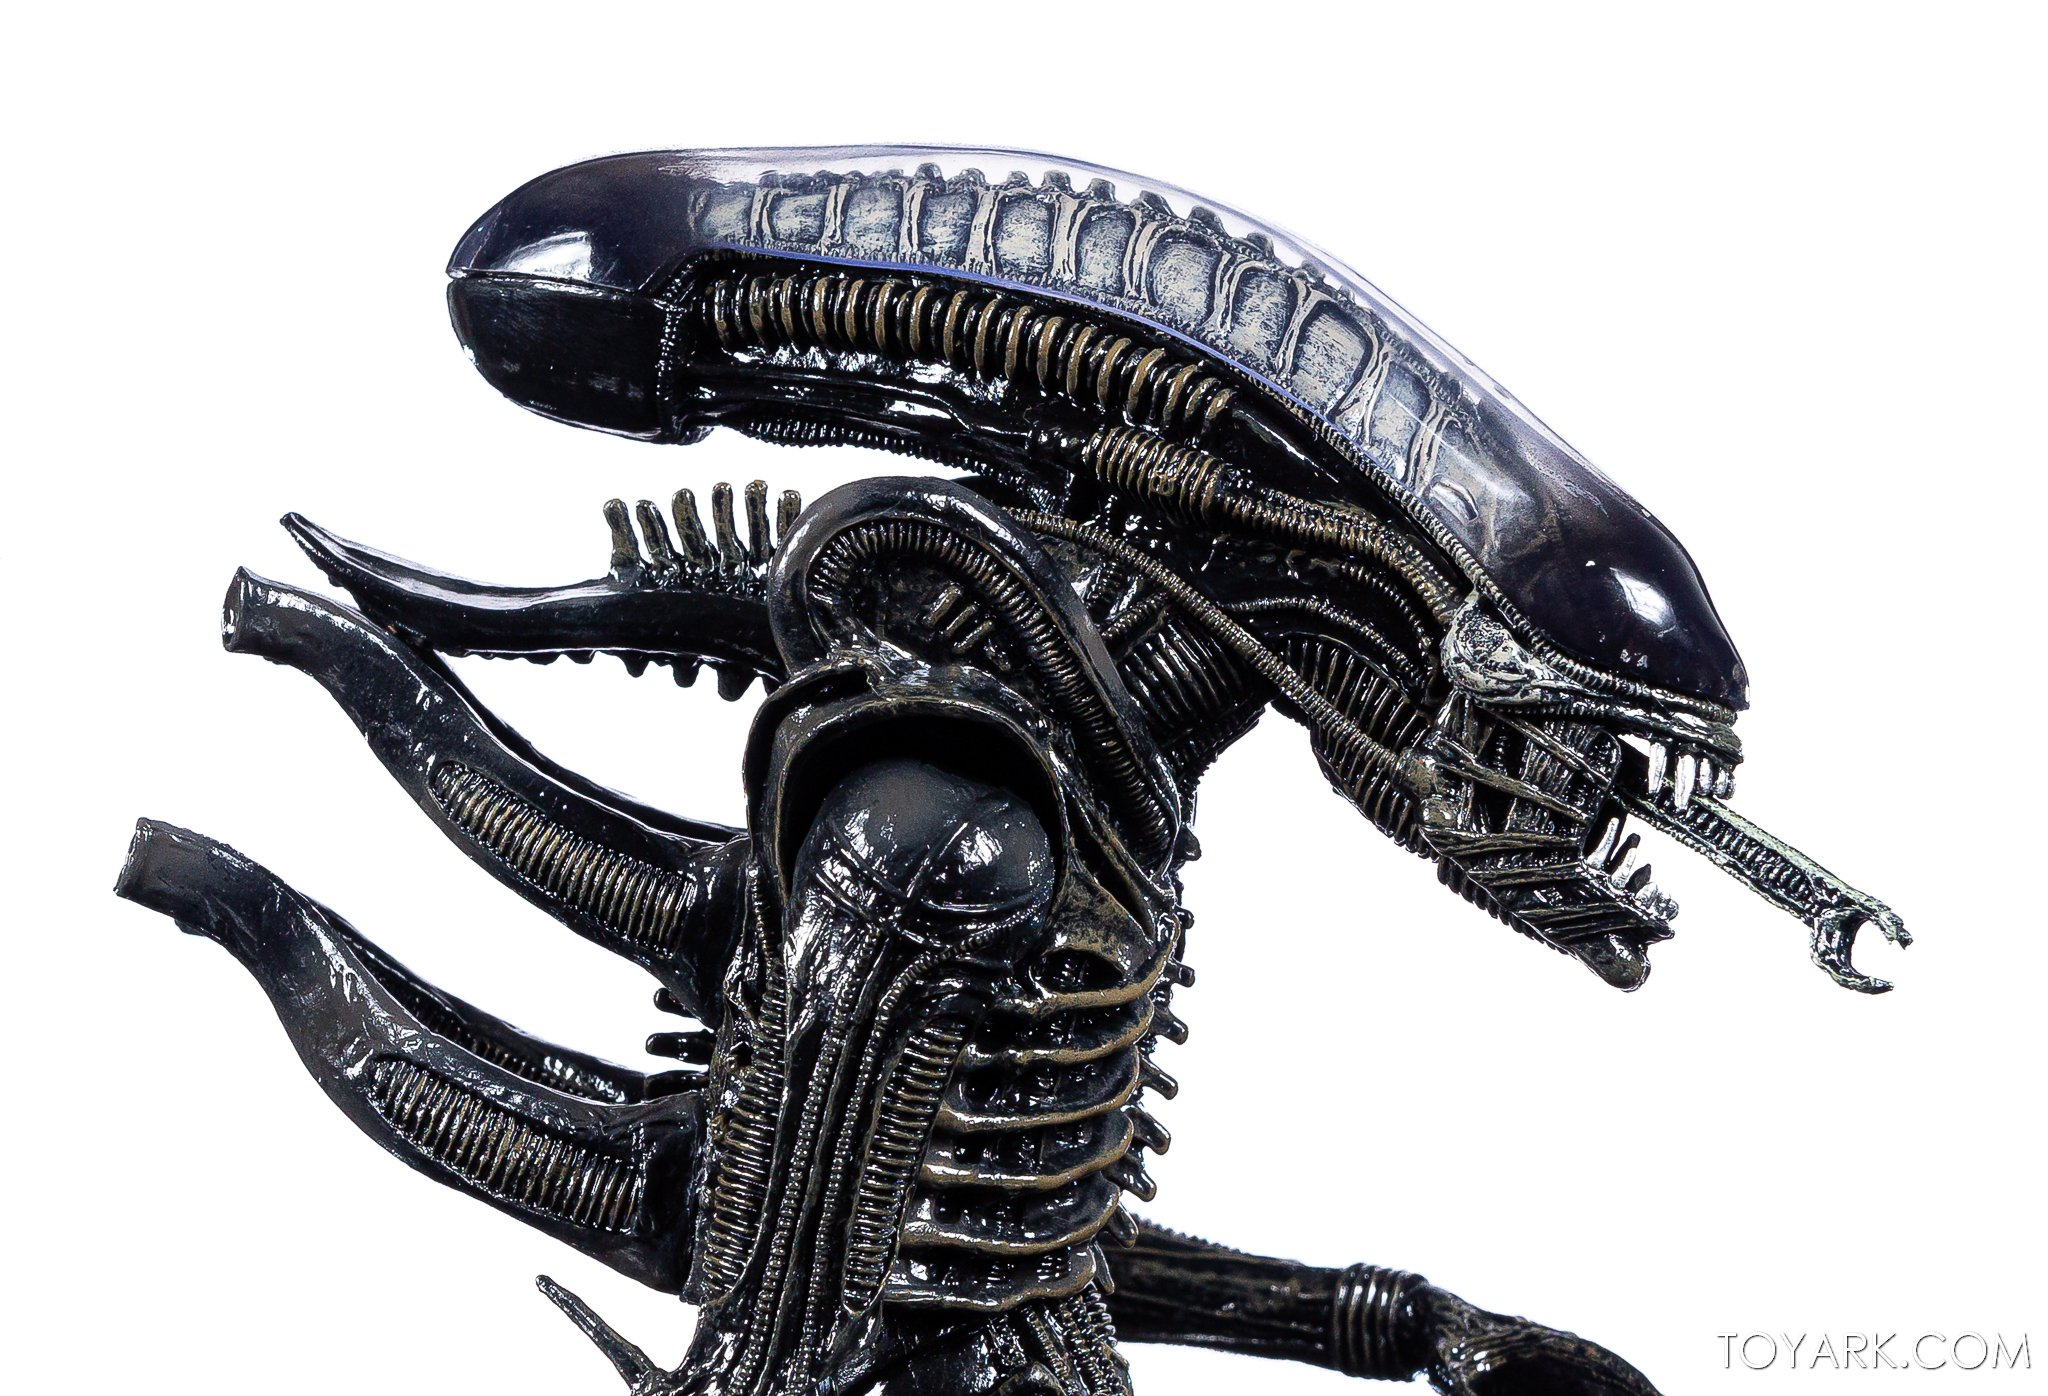 https://news.toyark.com/wp-content/uploads/sites/4/2020/01/NECA-Big-Chap-Alien-Ultimate-010.jpg